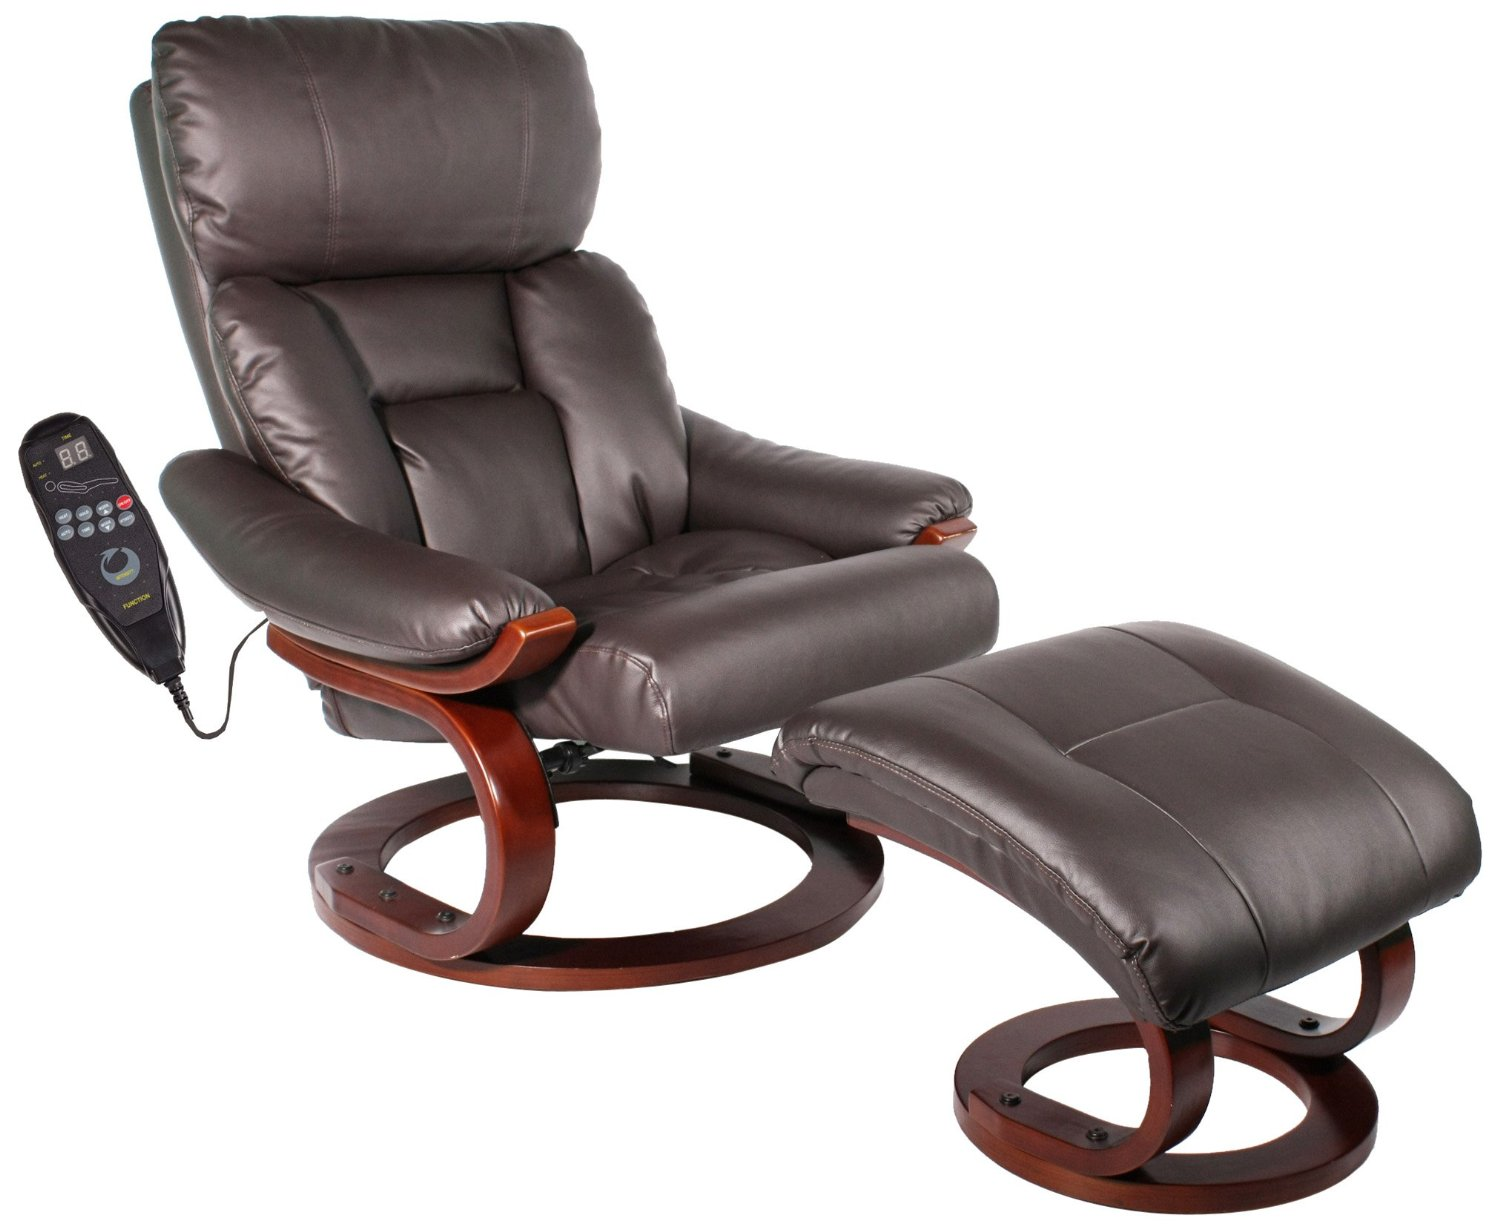 Comfort Vantin Deluxe Massaging Recliner And Ottoman Review – Reclining Chairs with Ottomans